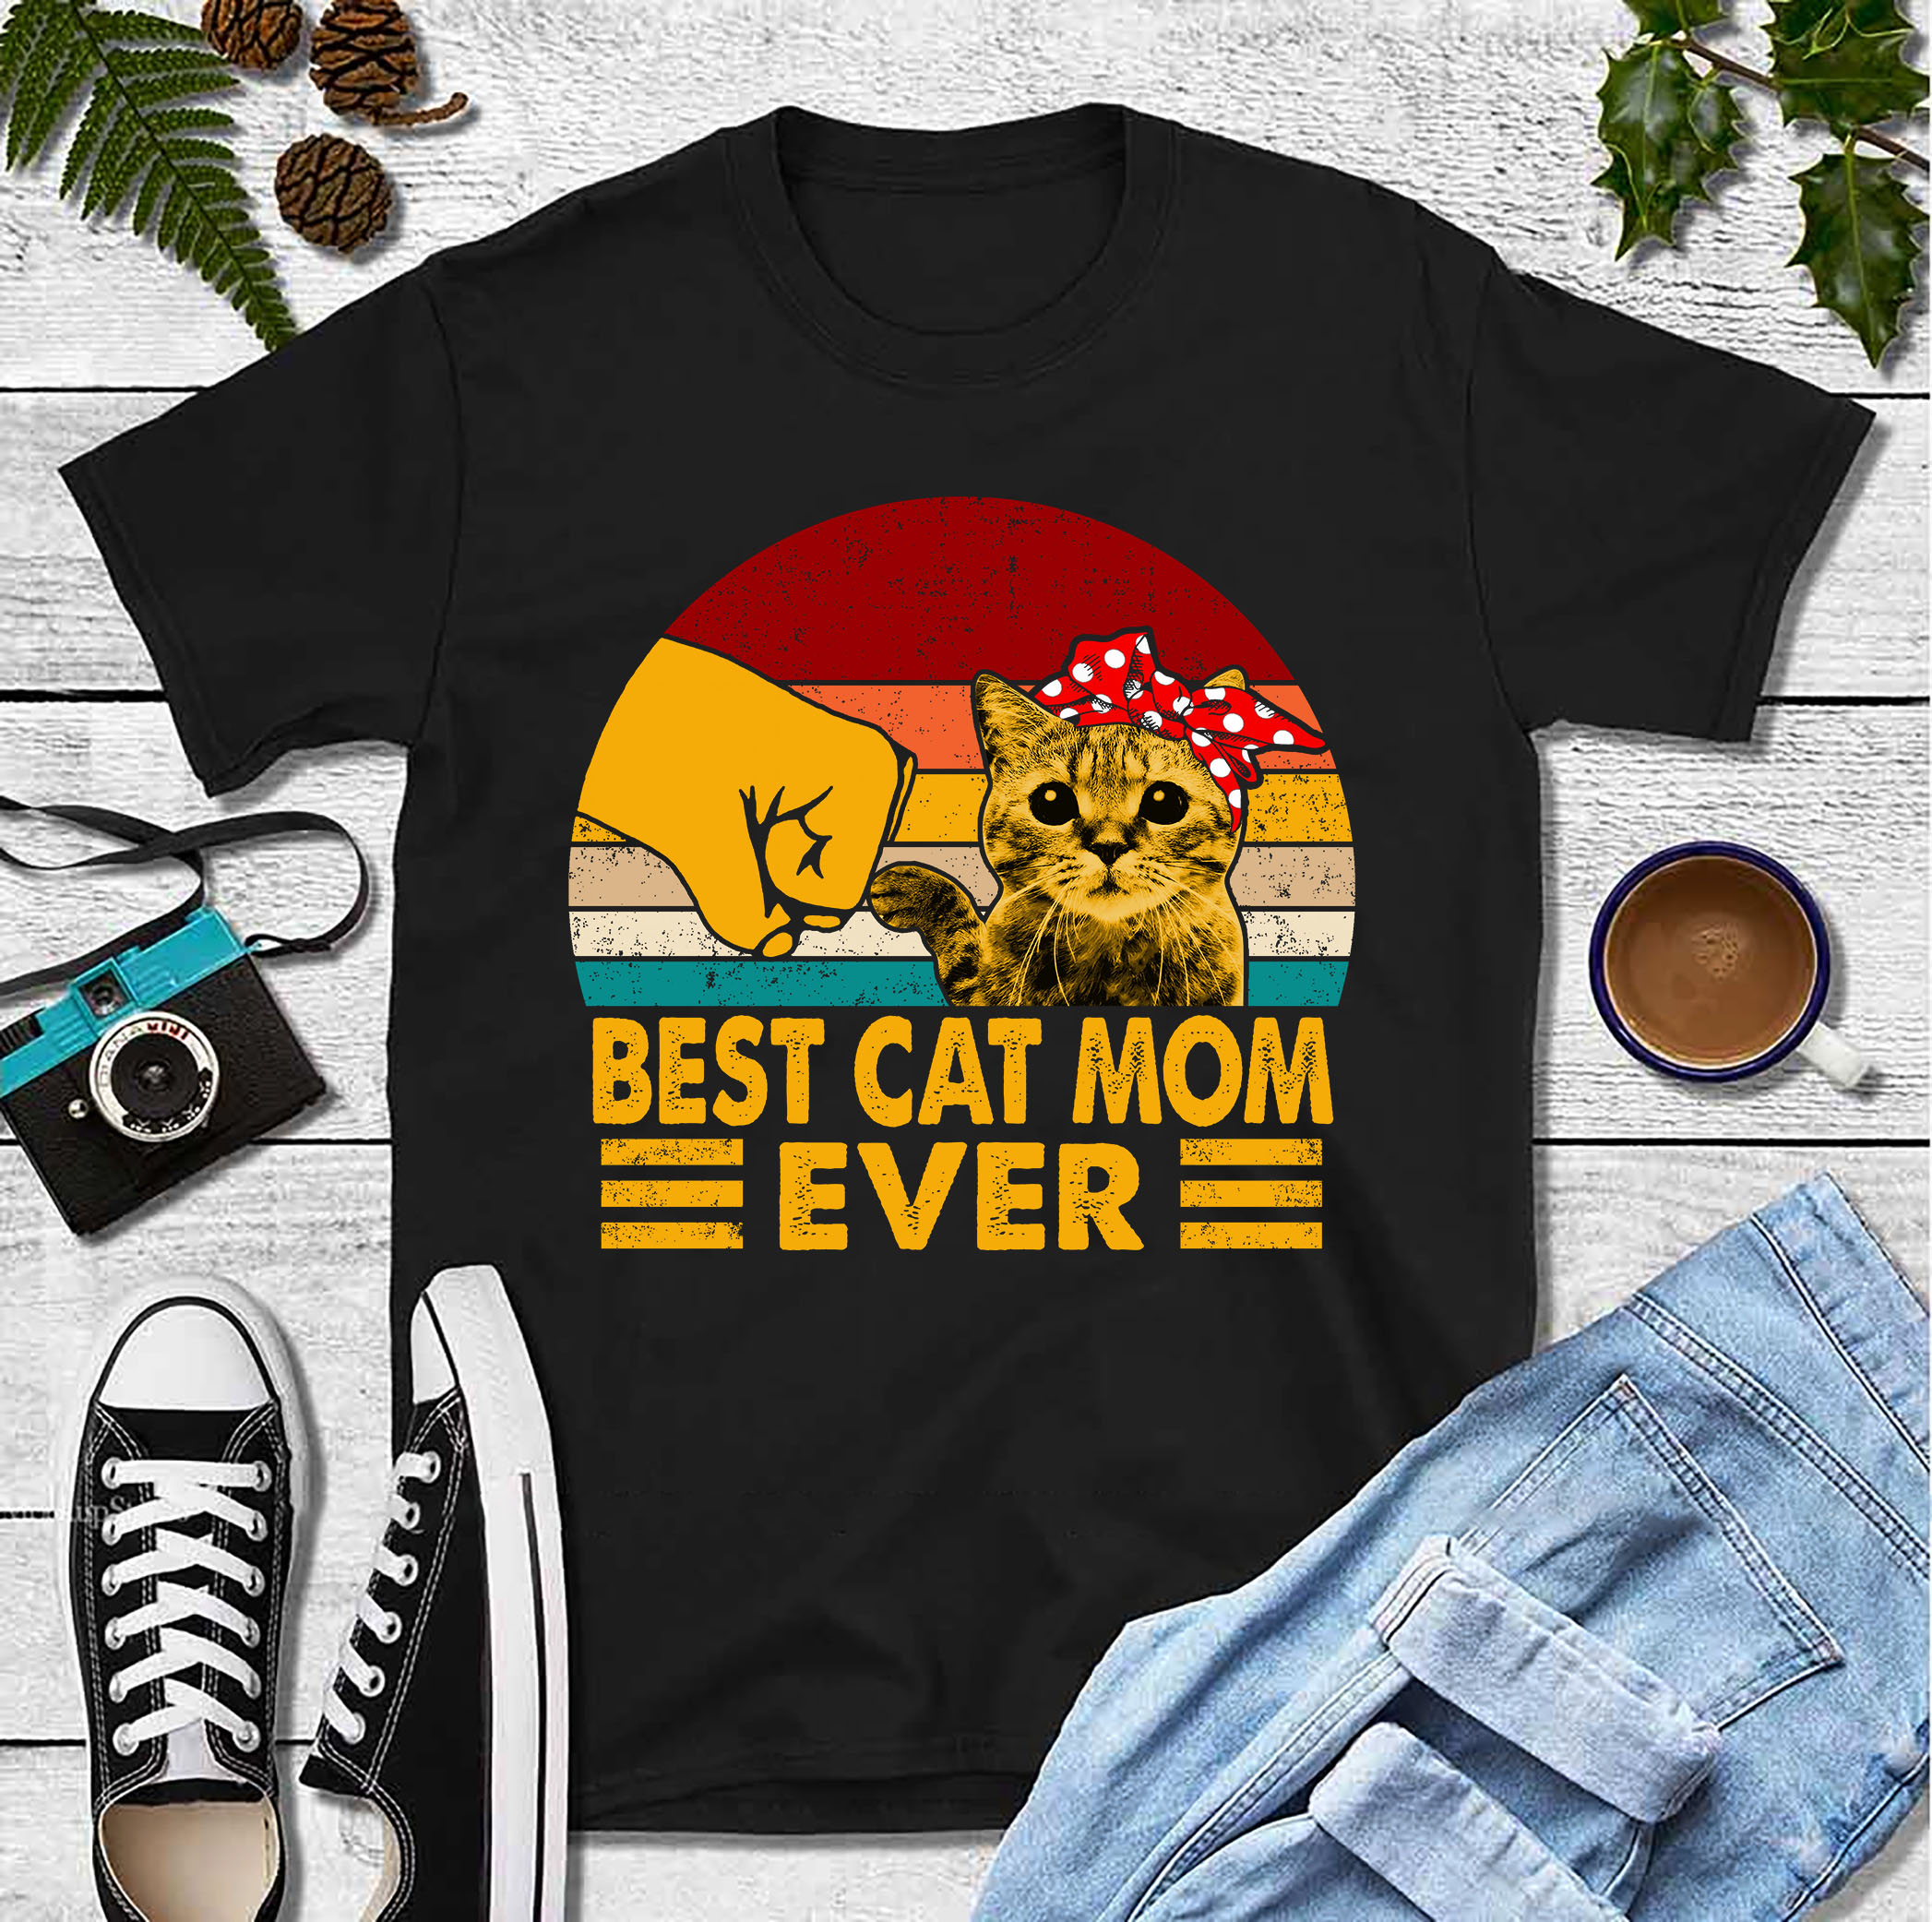 Best Cat Mom Ever Shirt